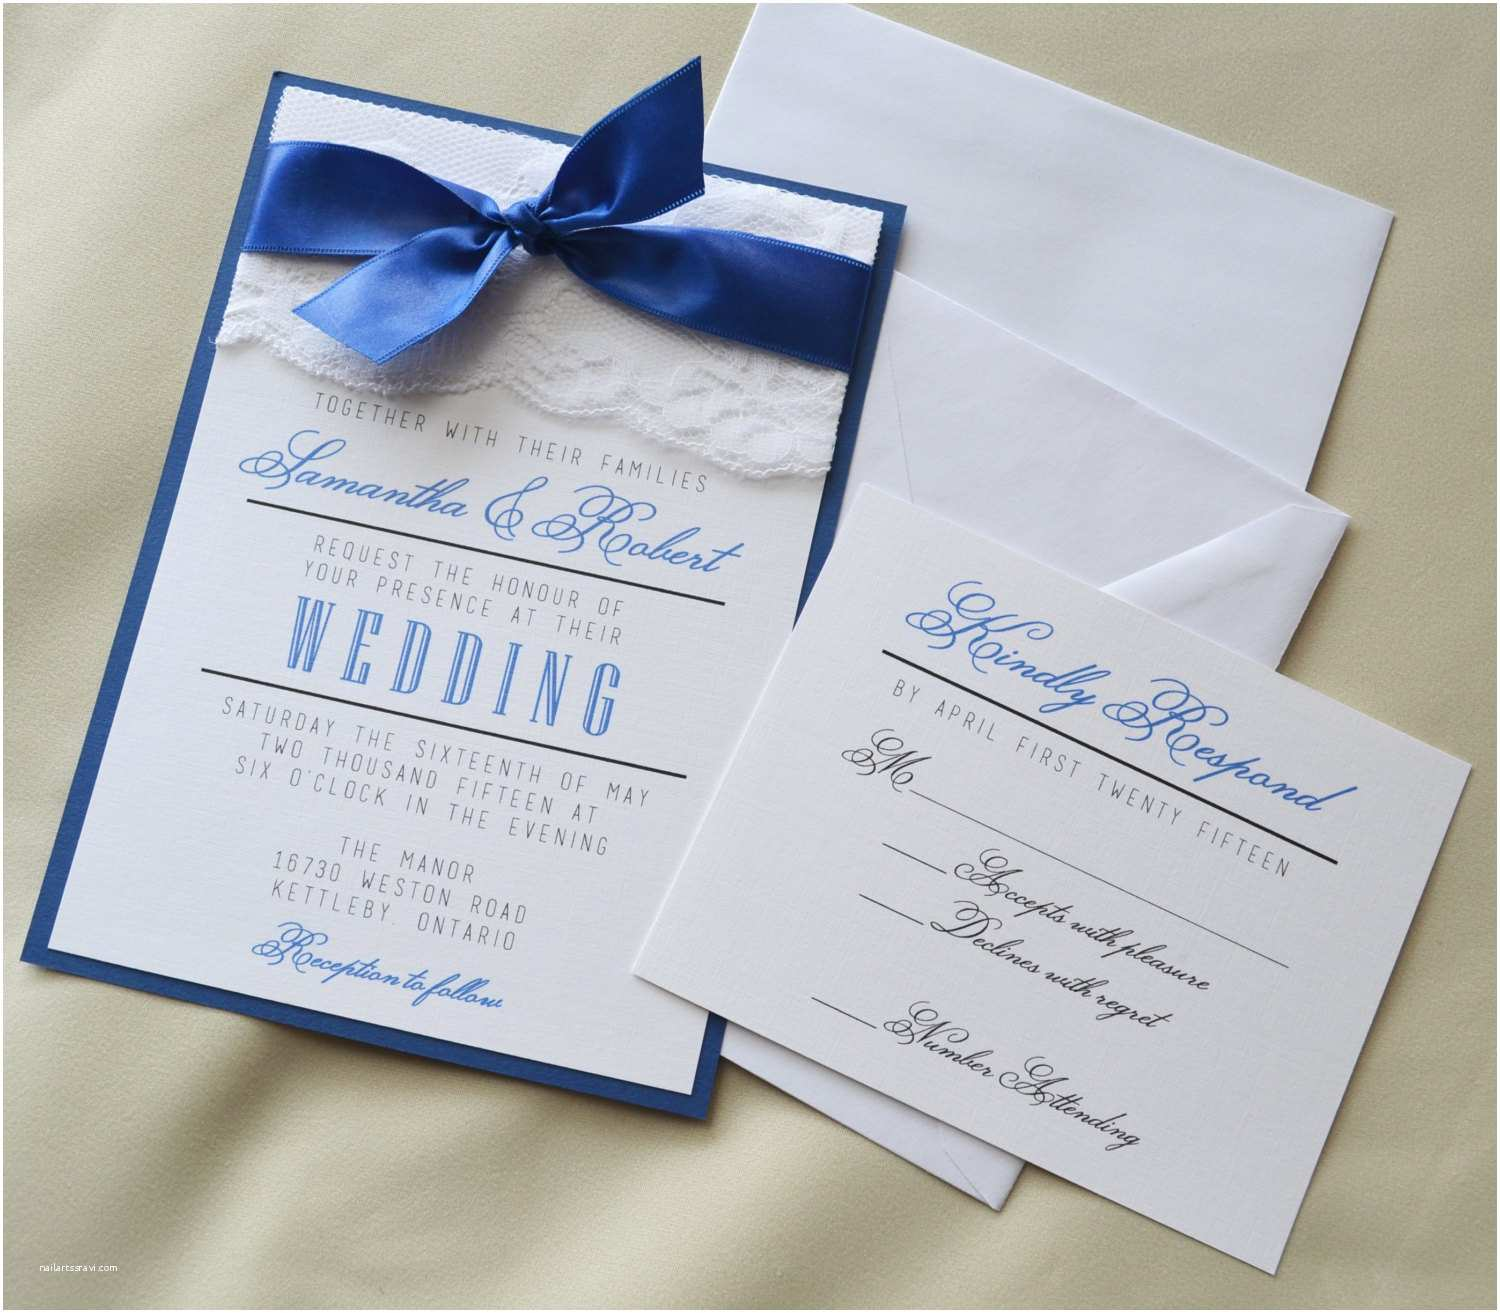 Design Your Own Wedding Invitations Create Own Wedding Invitation Kits Designs